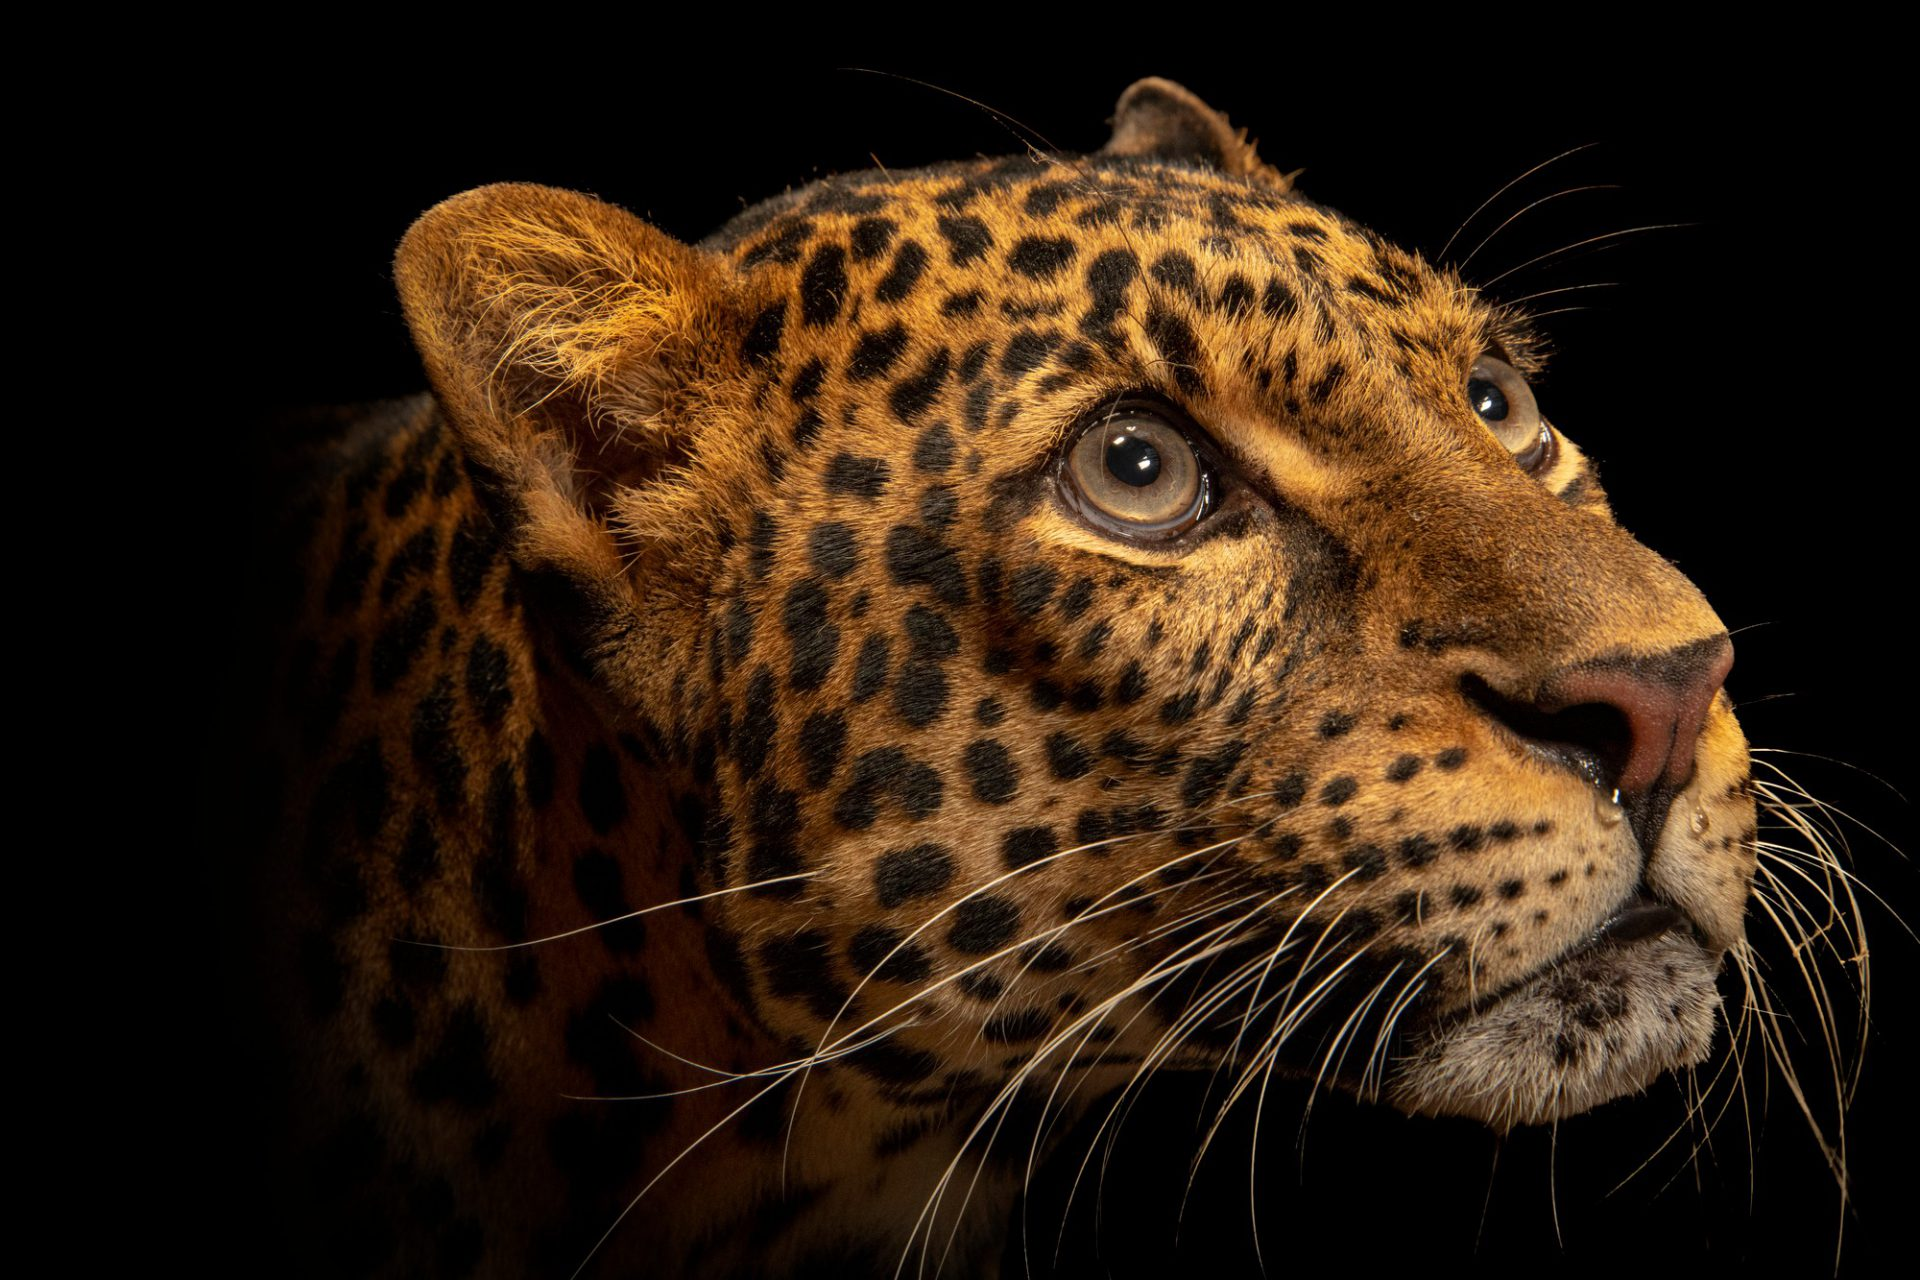 Photo: A critically endangered Javan leopard (Panthera pardus melas) at Taman Safari.